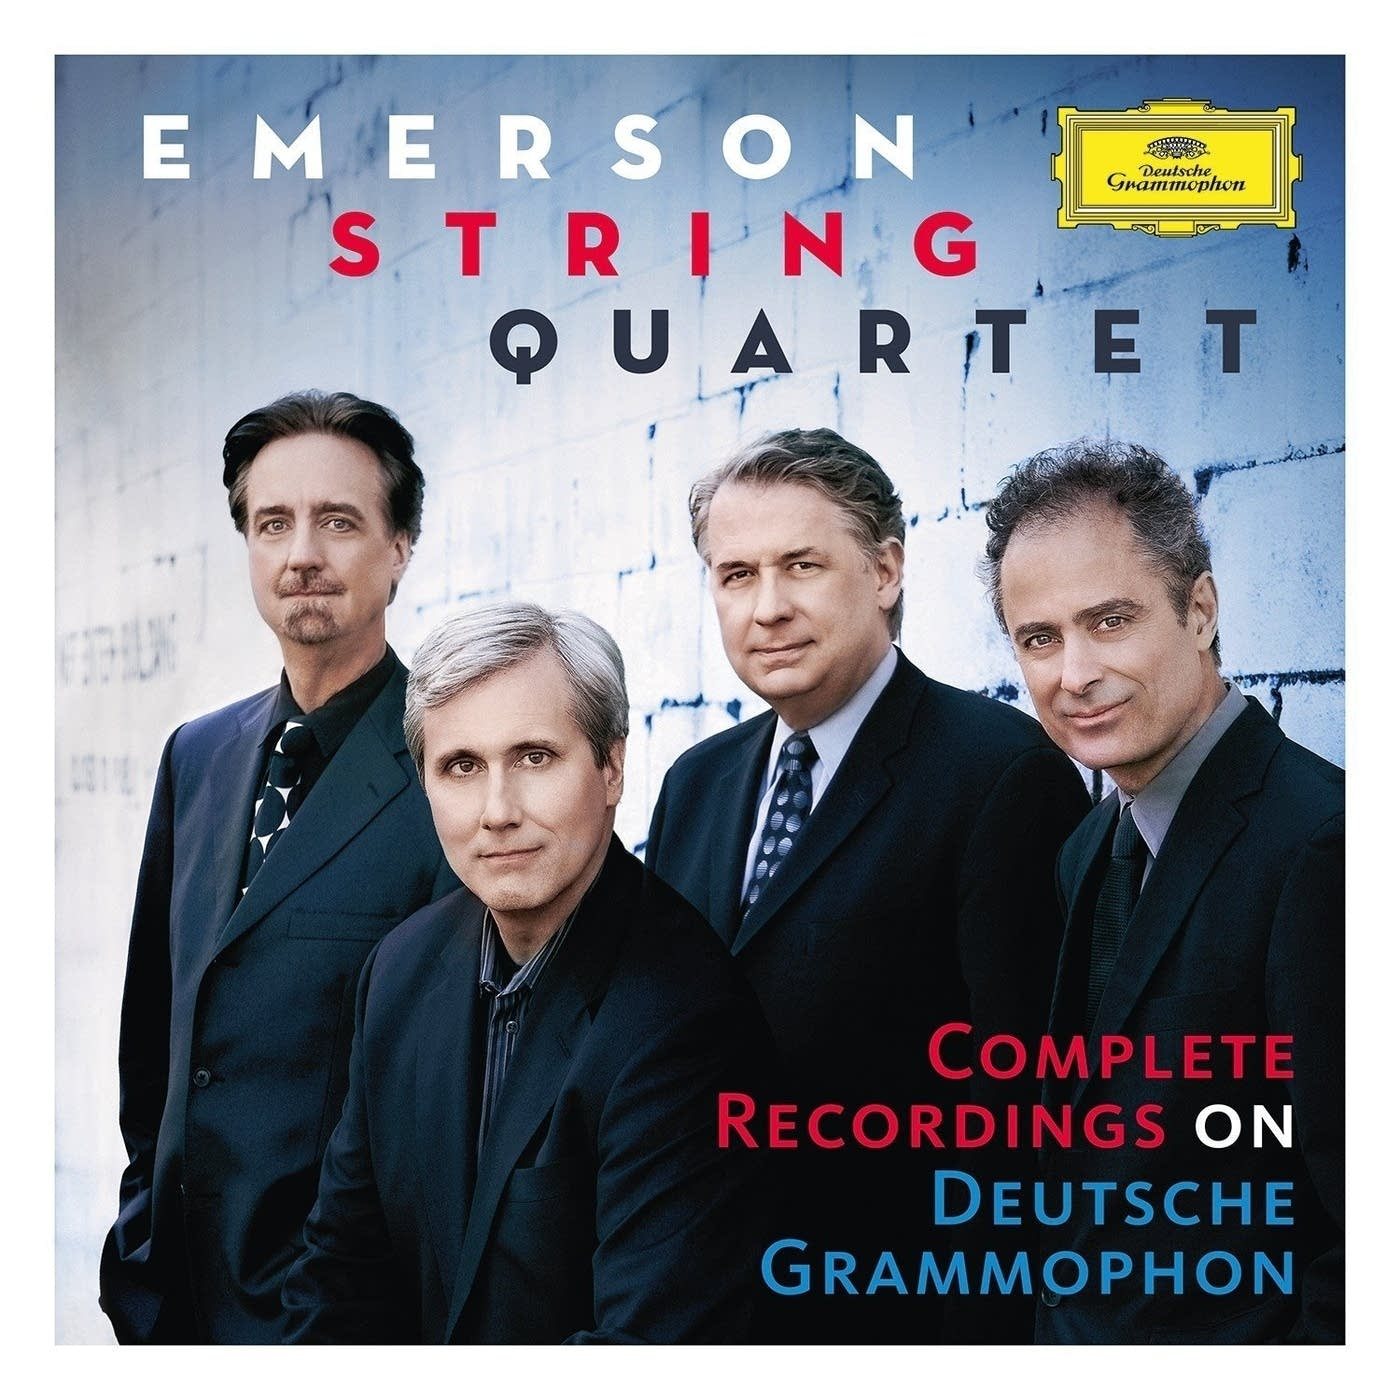 Emerson String Quartet - complete box set